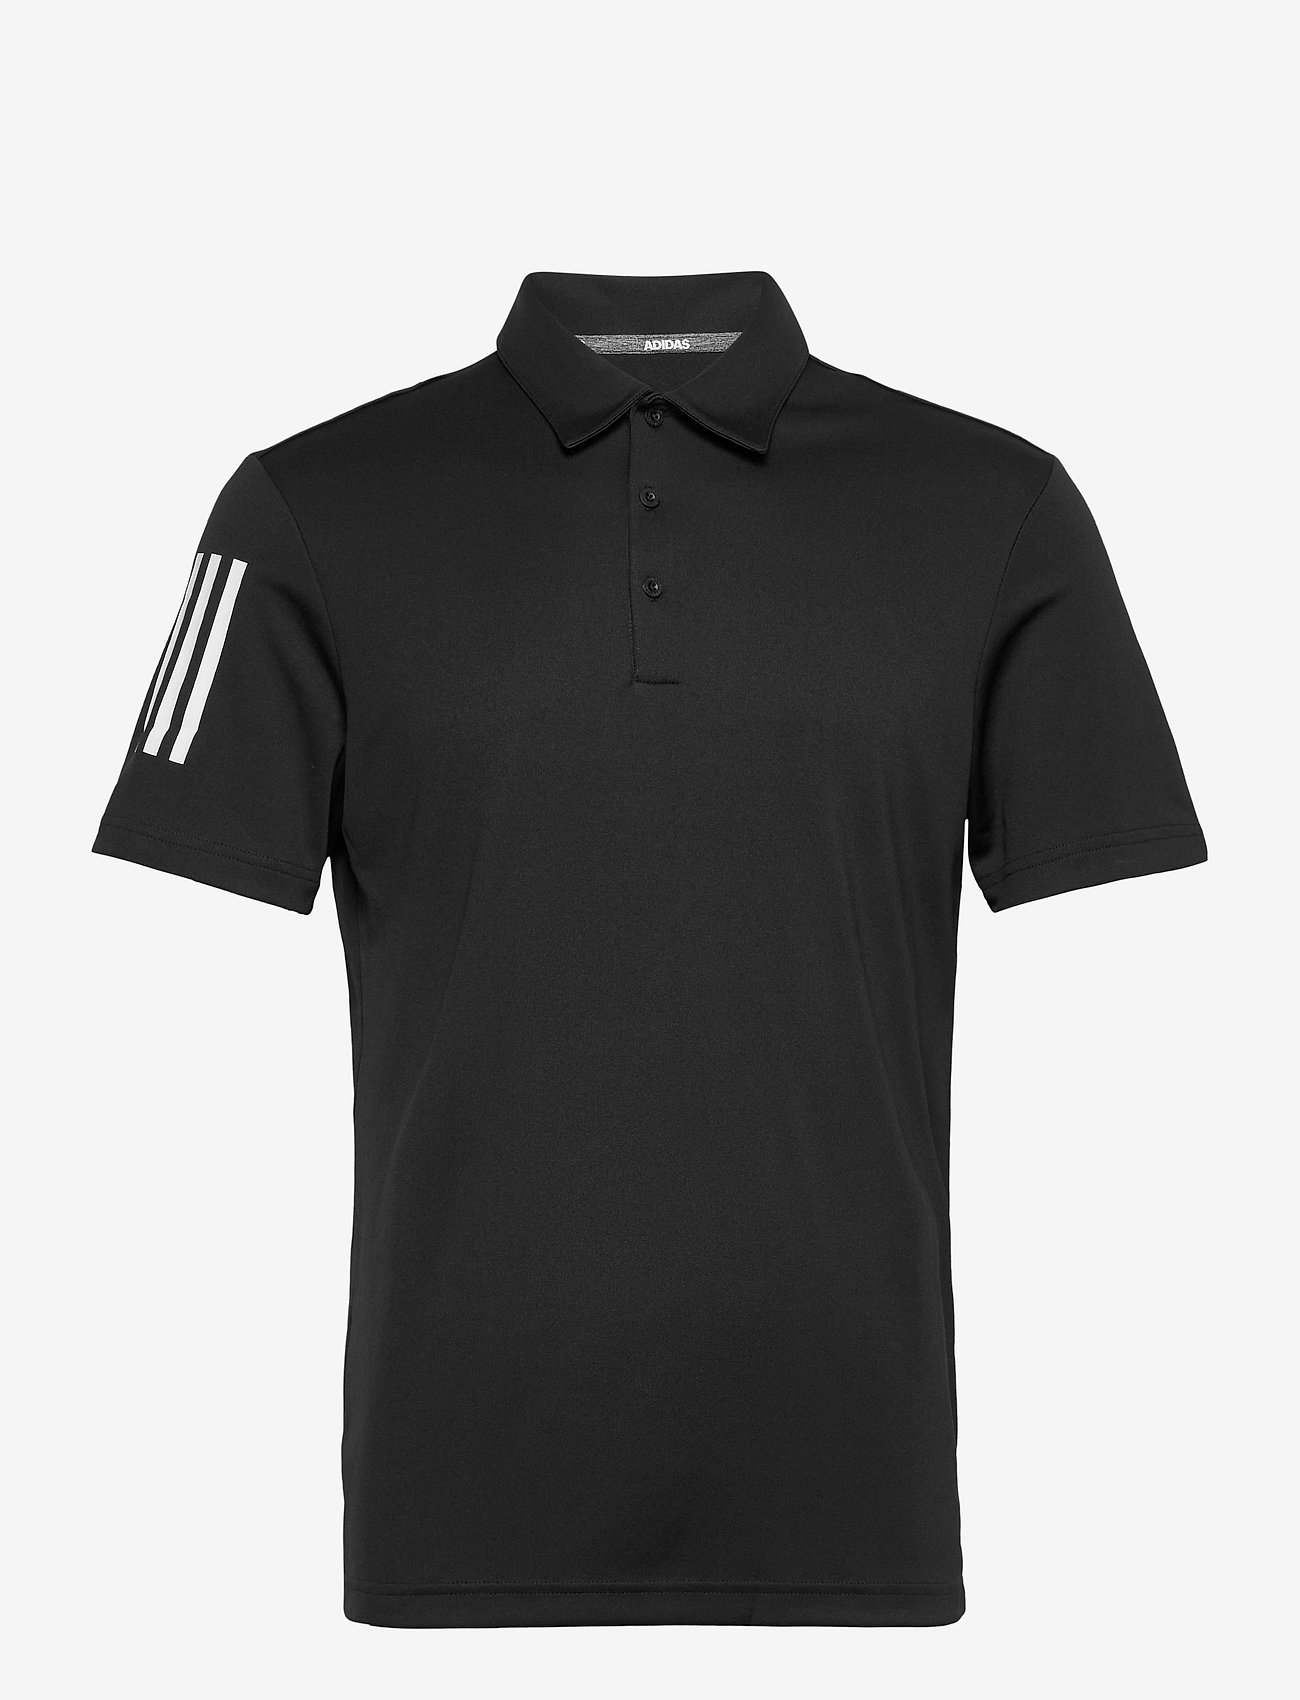 adidas Golf - 3-Stripe Basic - oberteile & t-shirts - black/white - 0